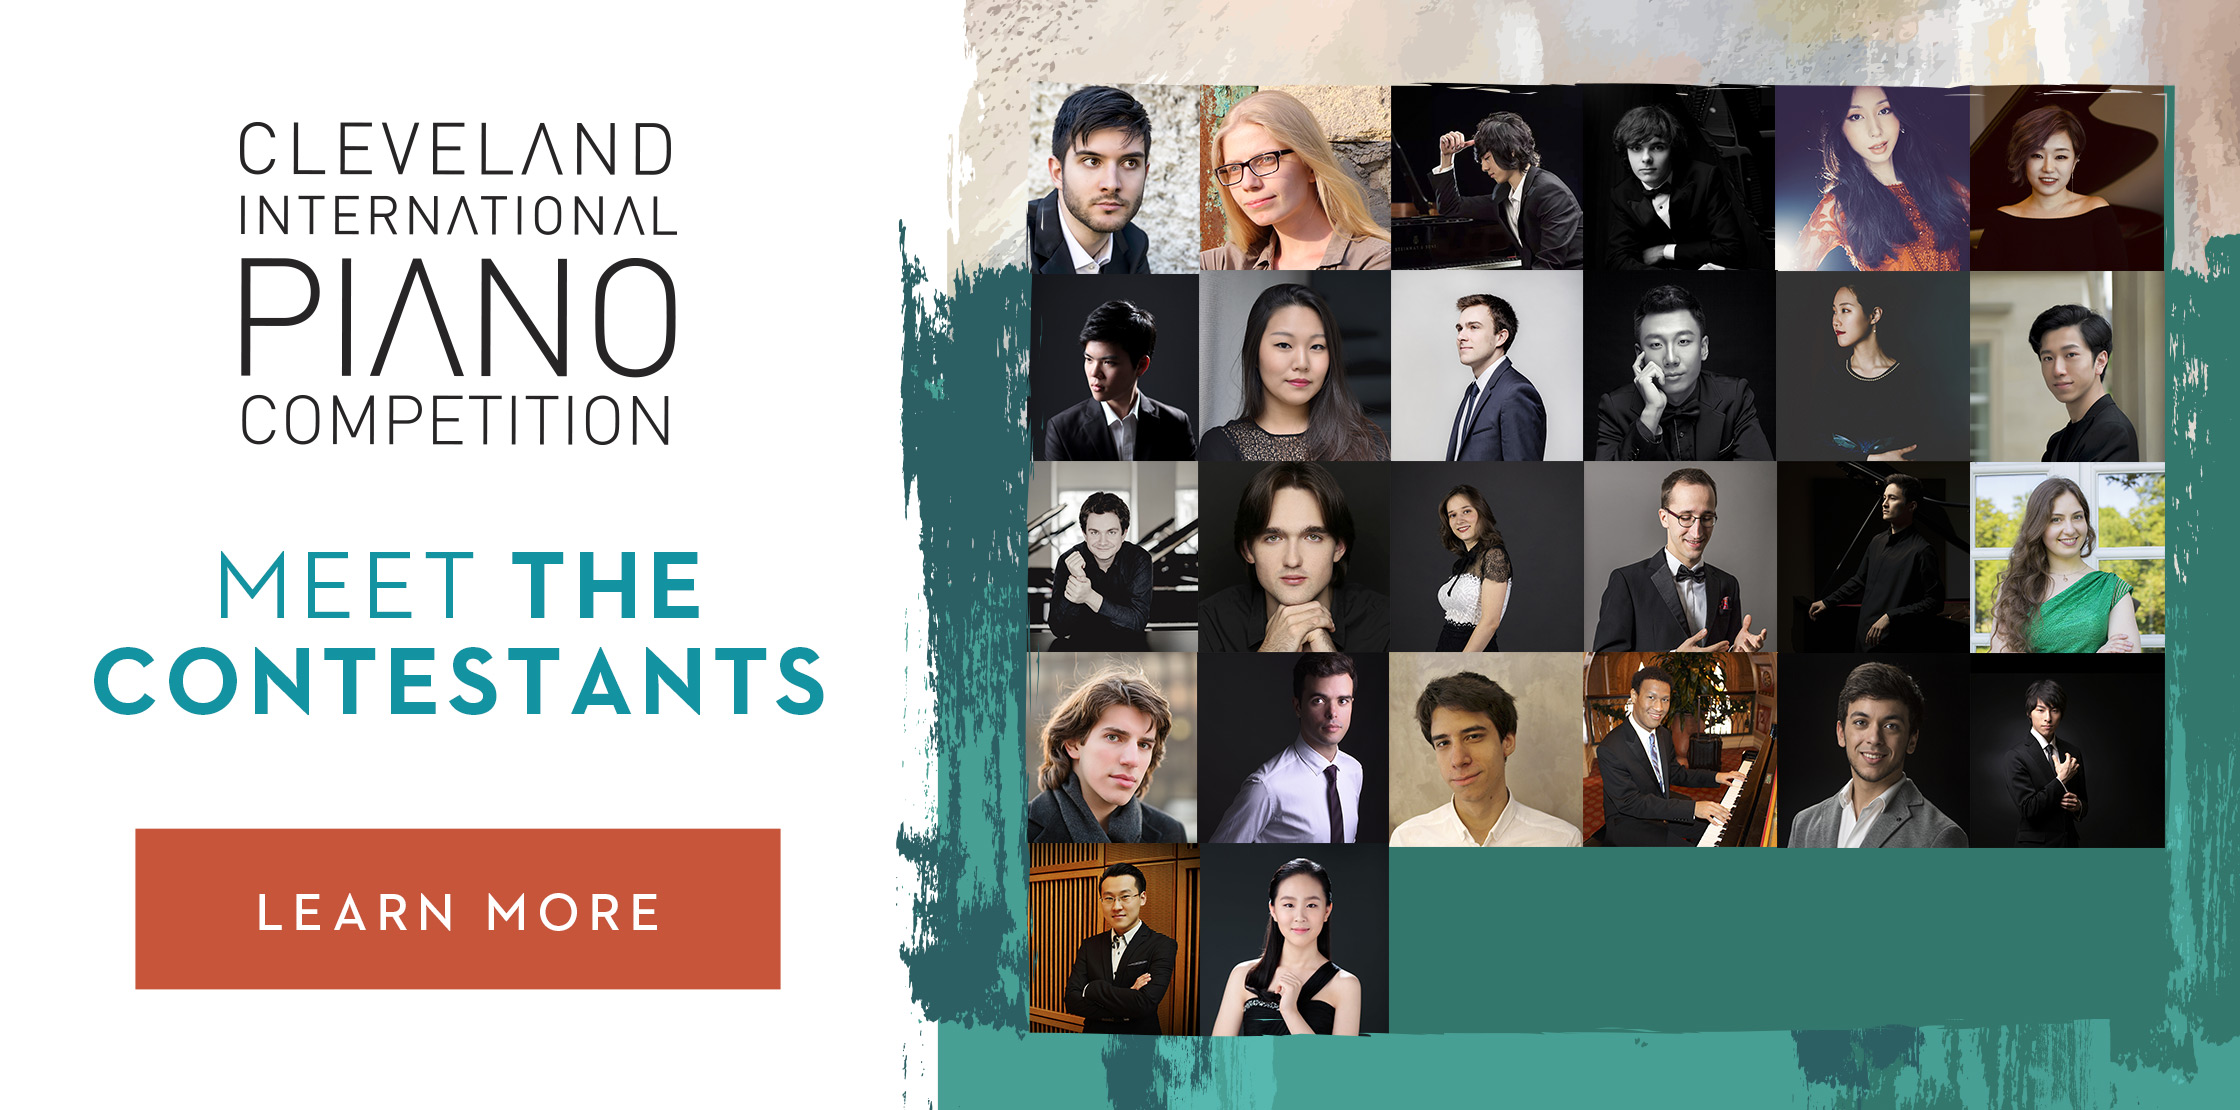 Cleveland International Piano Competition Meet the Contestants